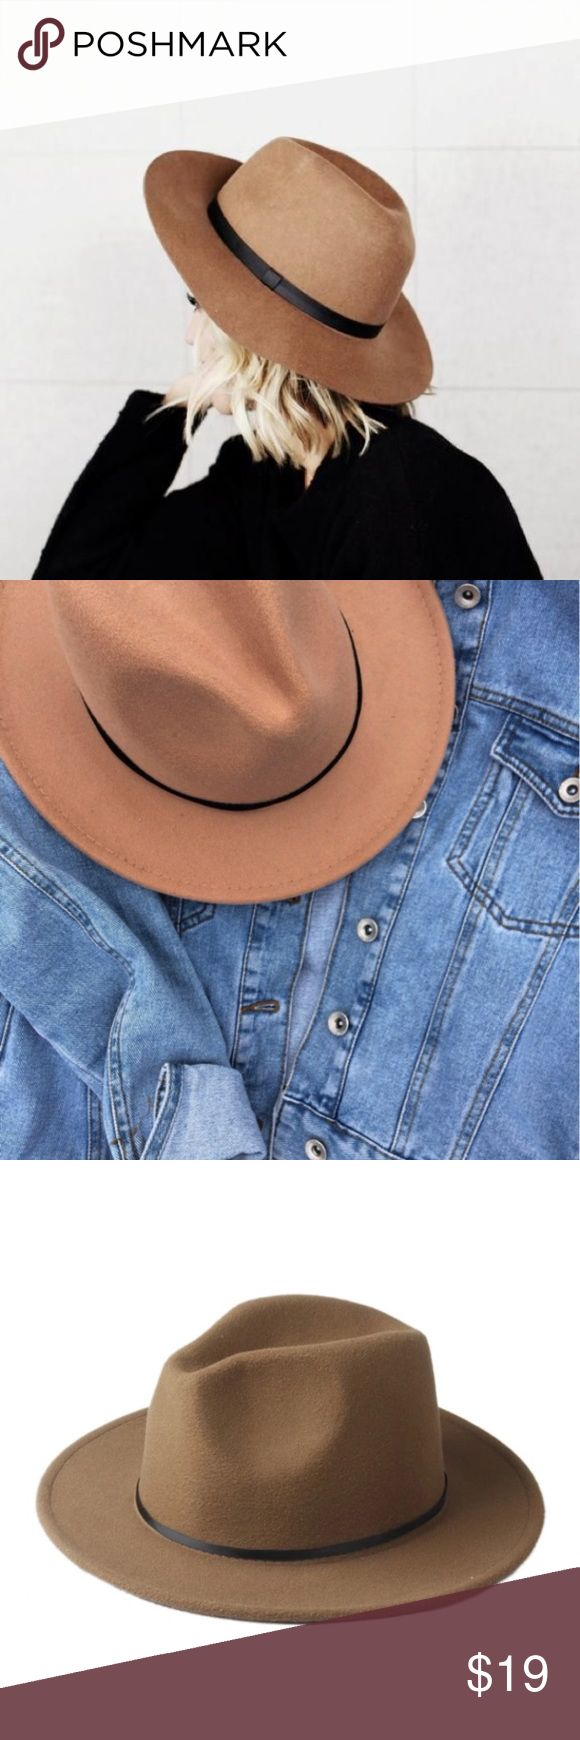 Wide Brim Wool Fedora Wide brim wool fedora hat in a camel/ khaki color. Color is most accurately depicted in the third photograph. Accessories Hats